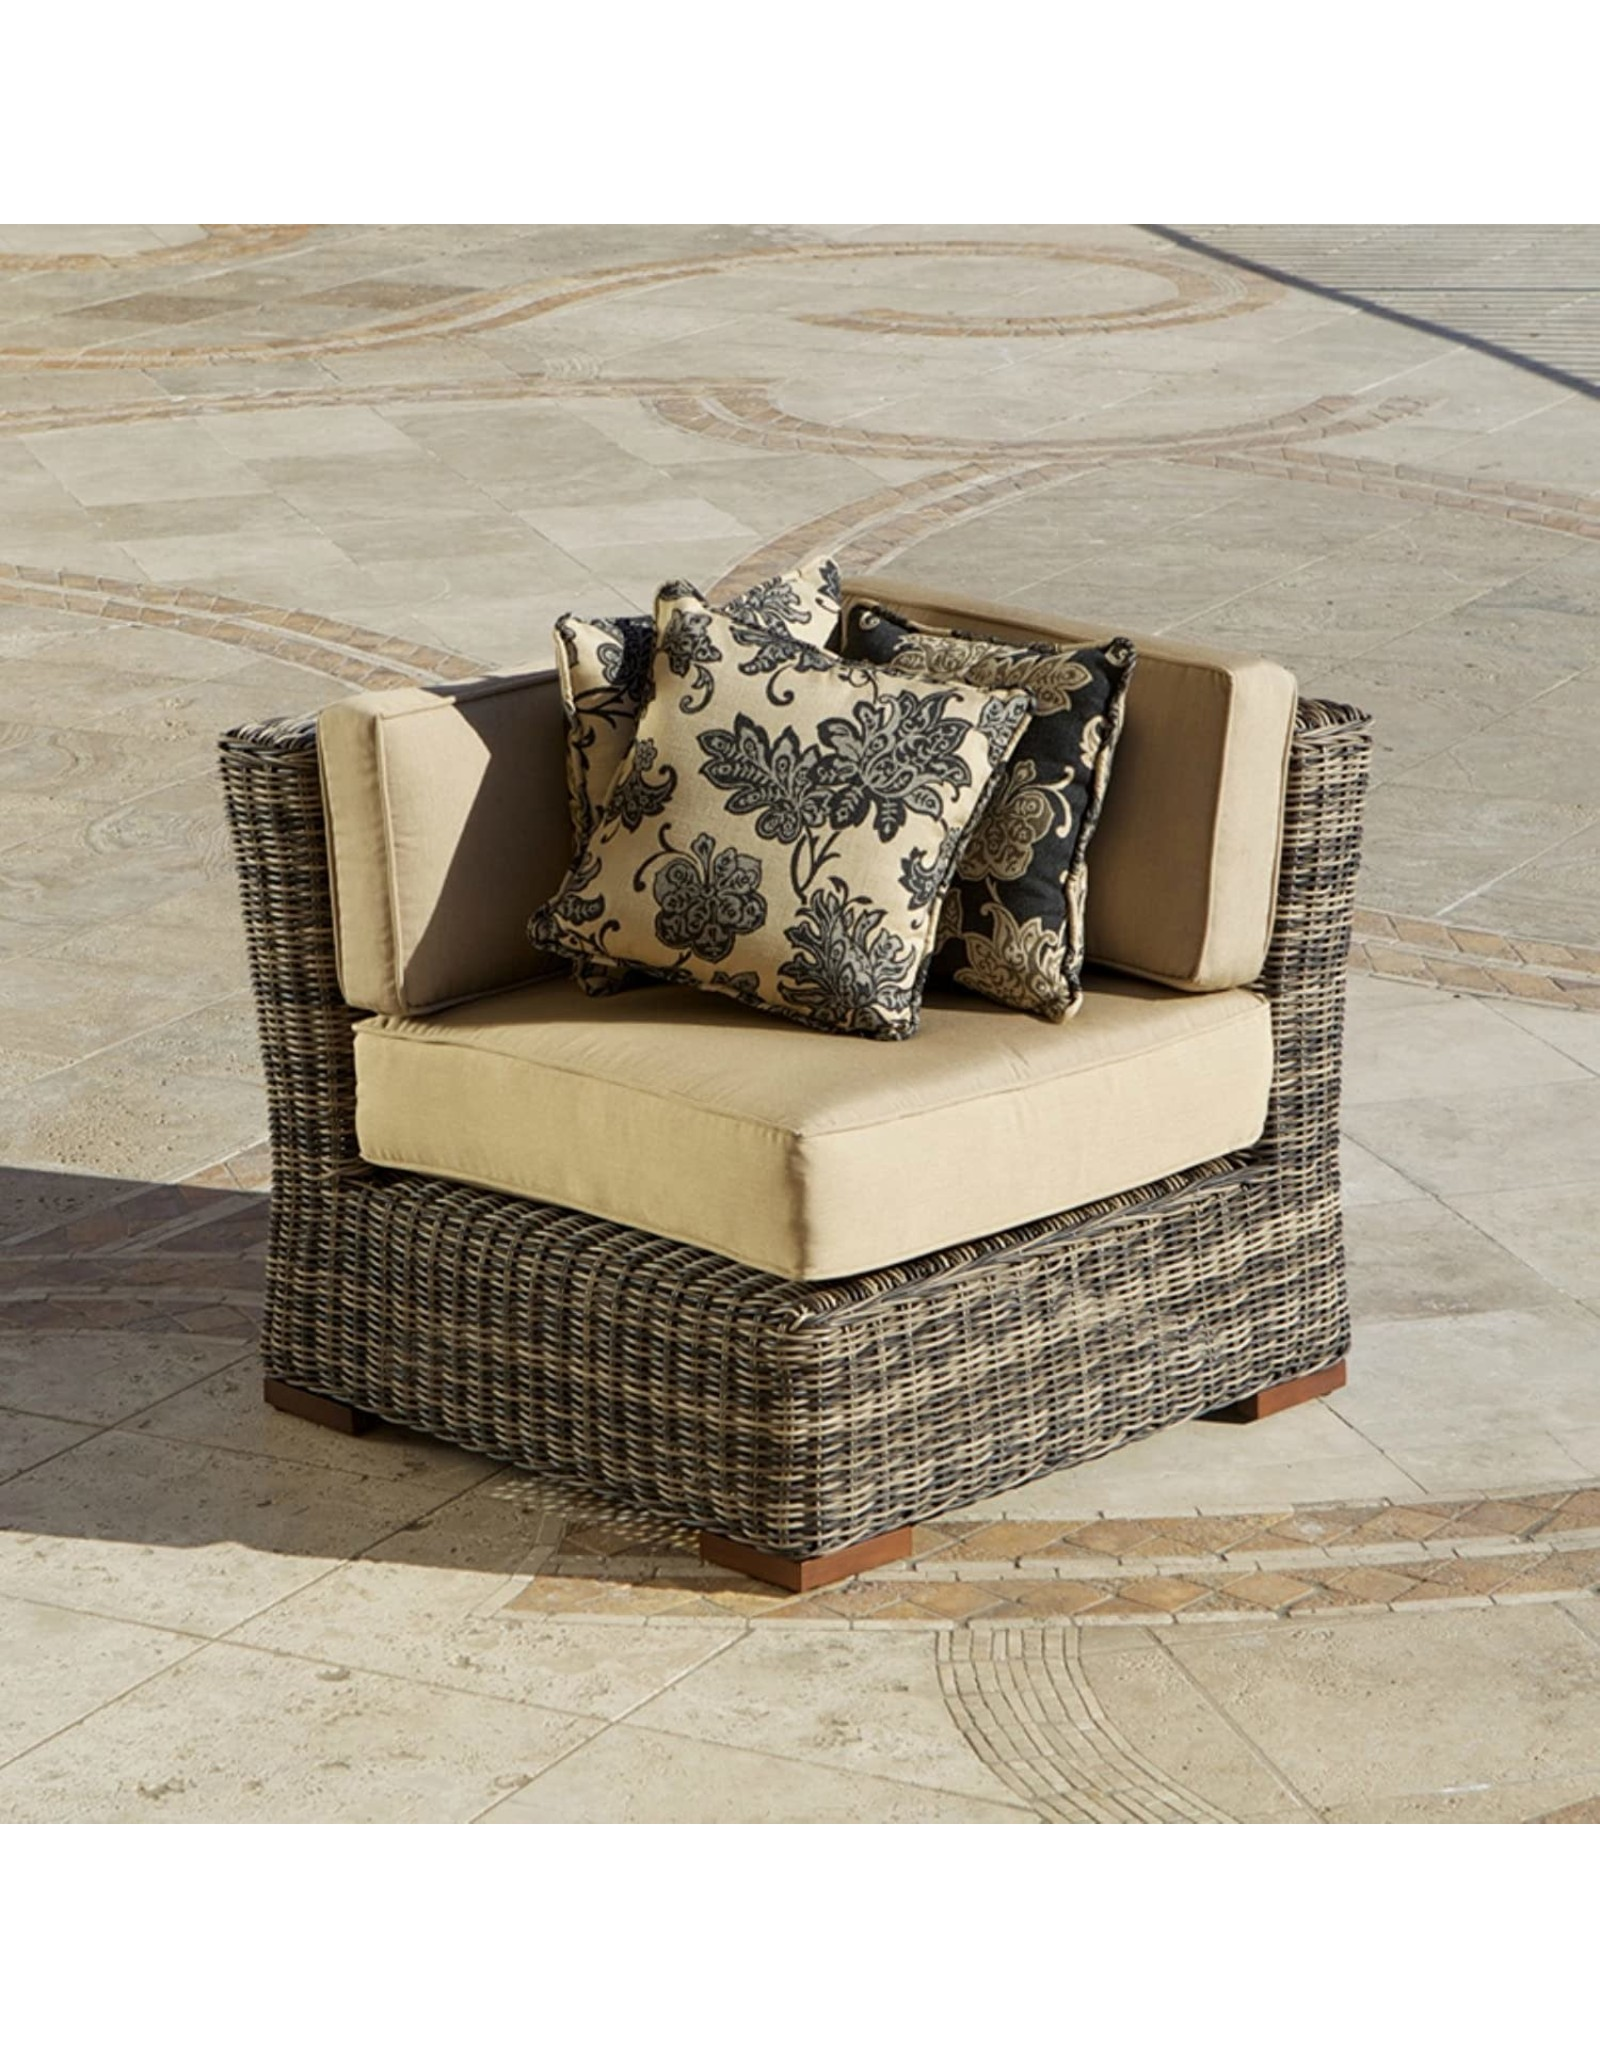 rst outdoor rst brands op pe36c lnk wg resort collection 36 inch corner section rattan patio furniture weathered gray